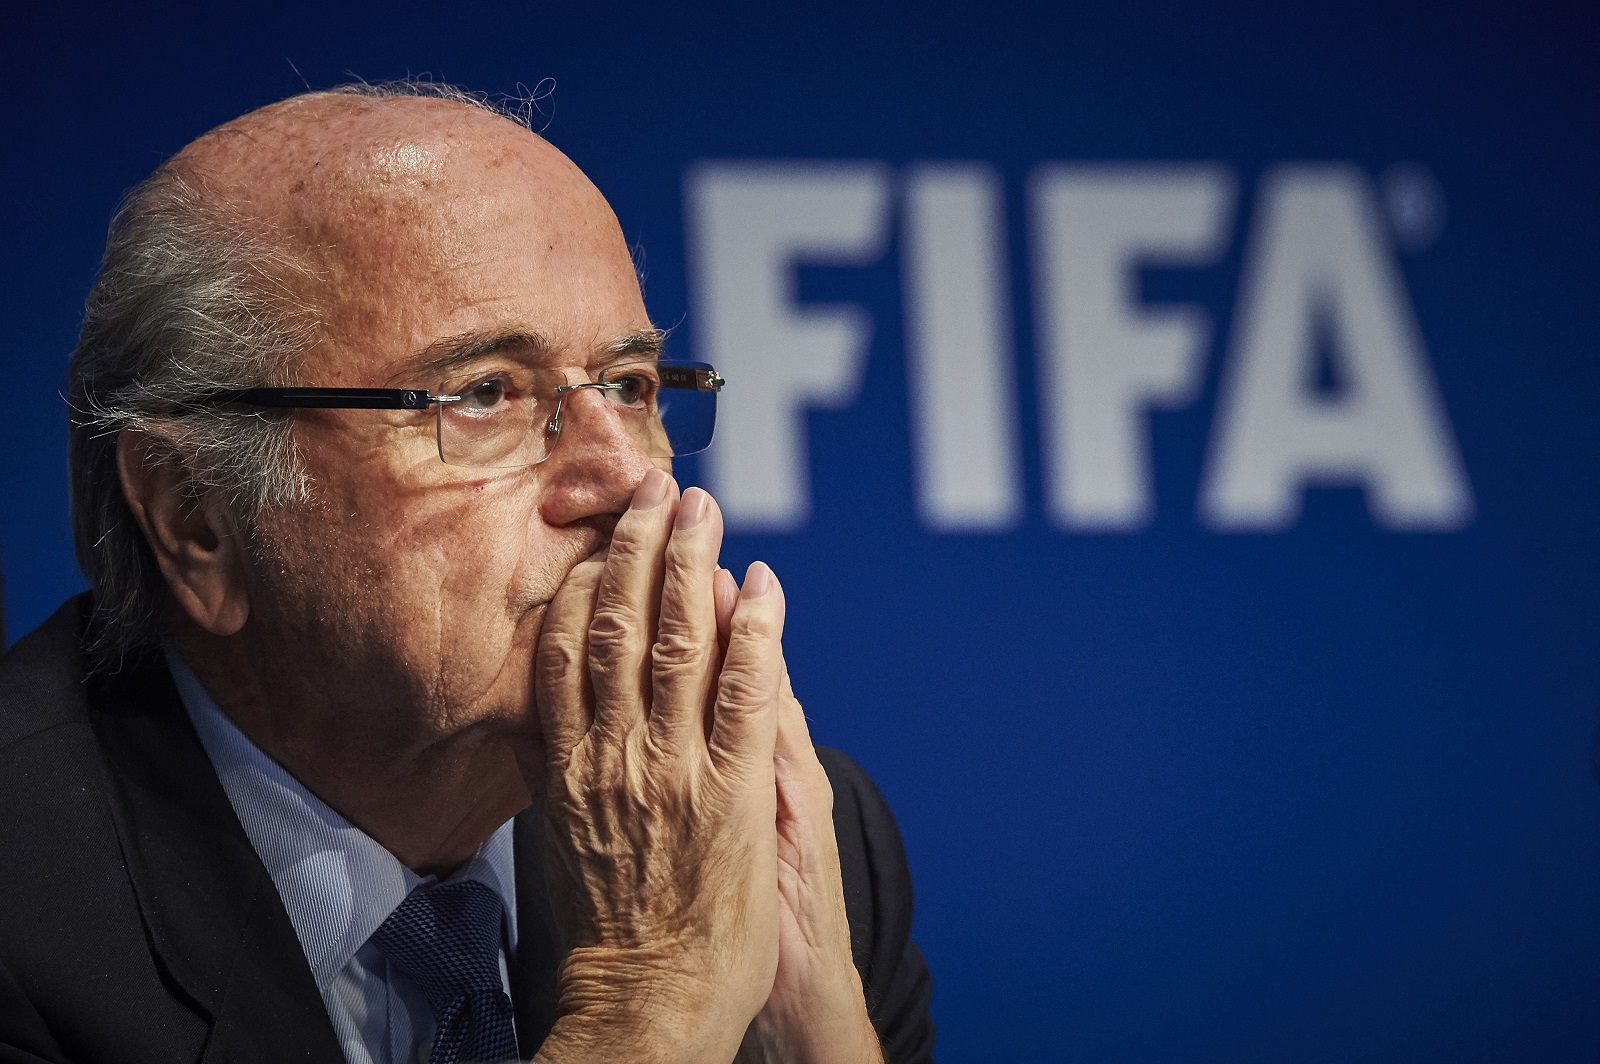 Sepp Blatter in 2015 at a FIFA conference. Credit: AFP Photo/Michael Buholzer/Getty Images